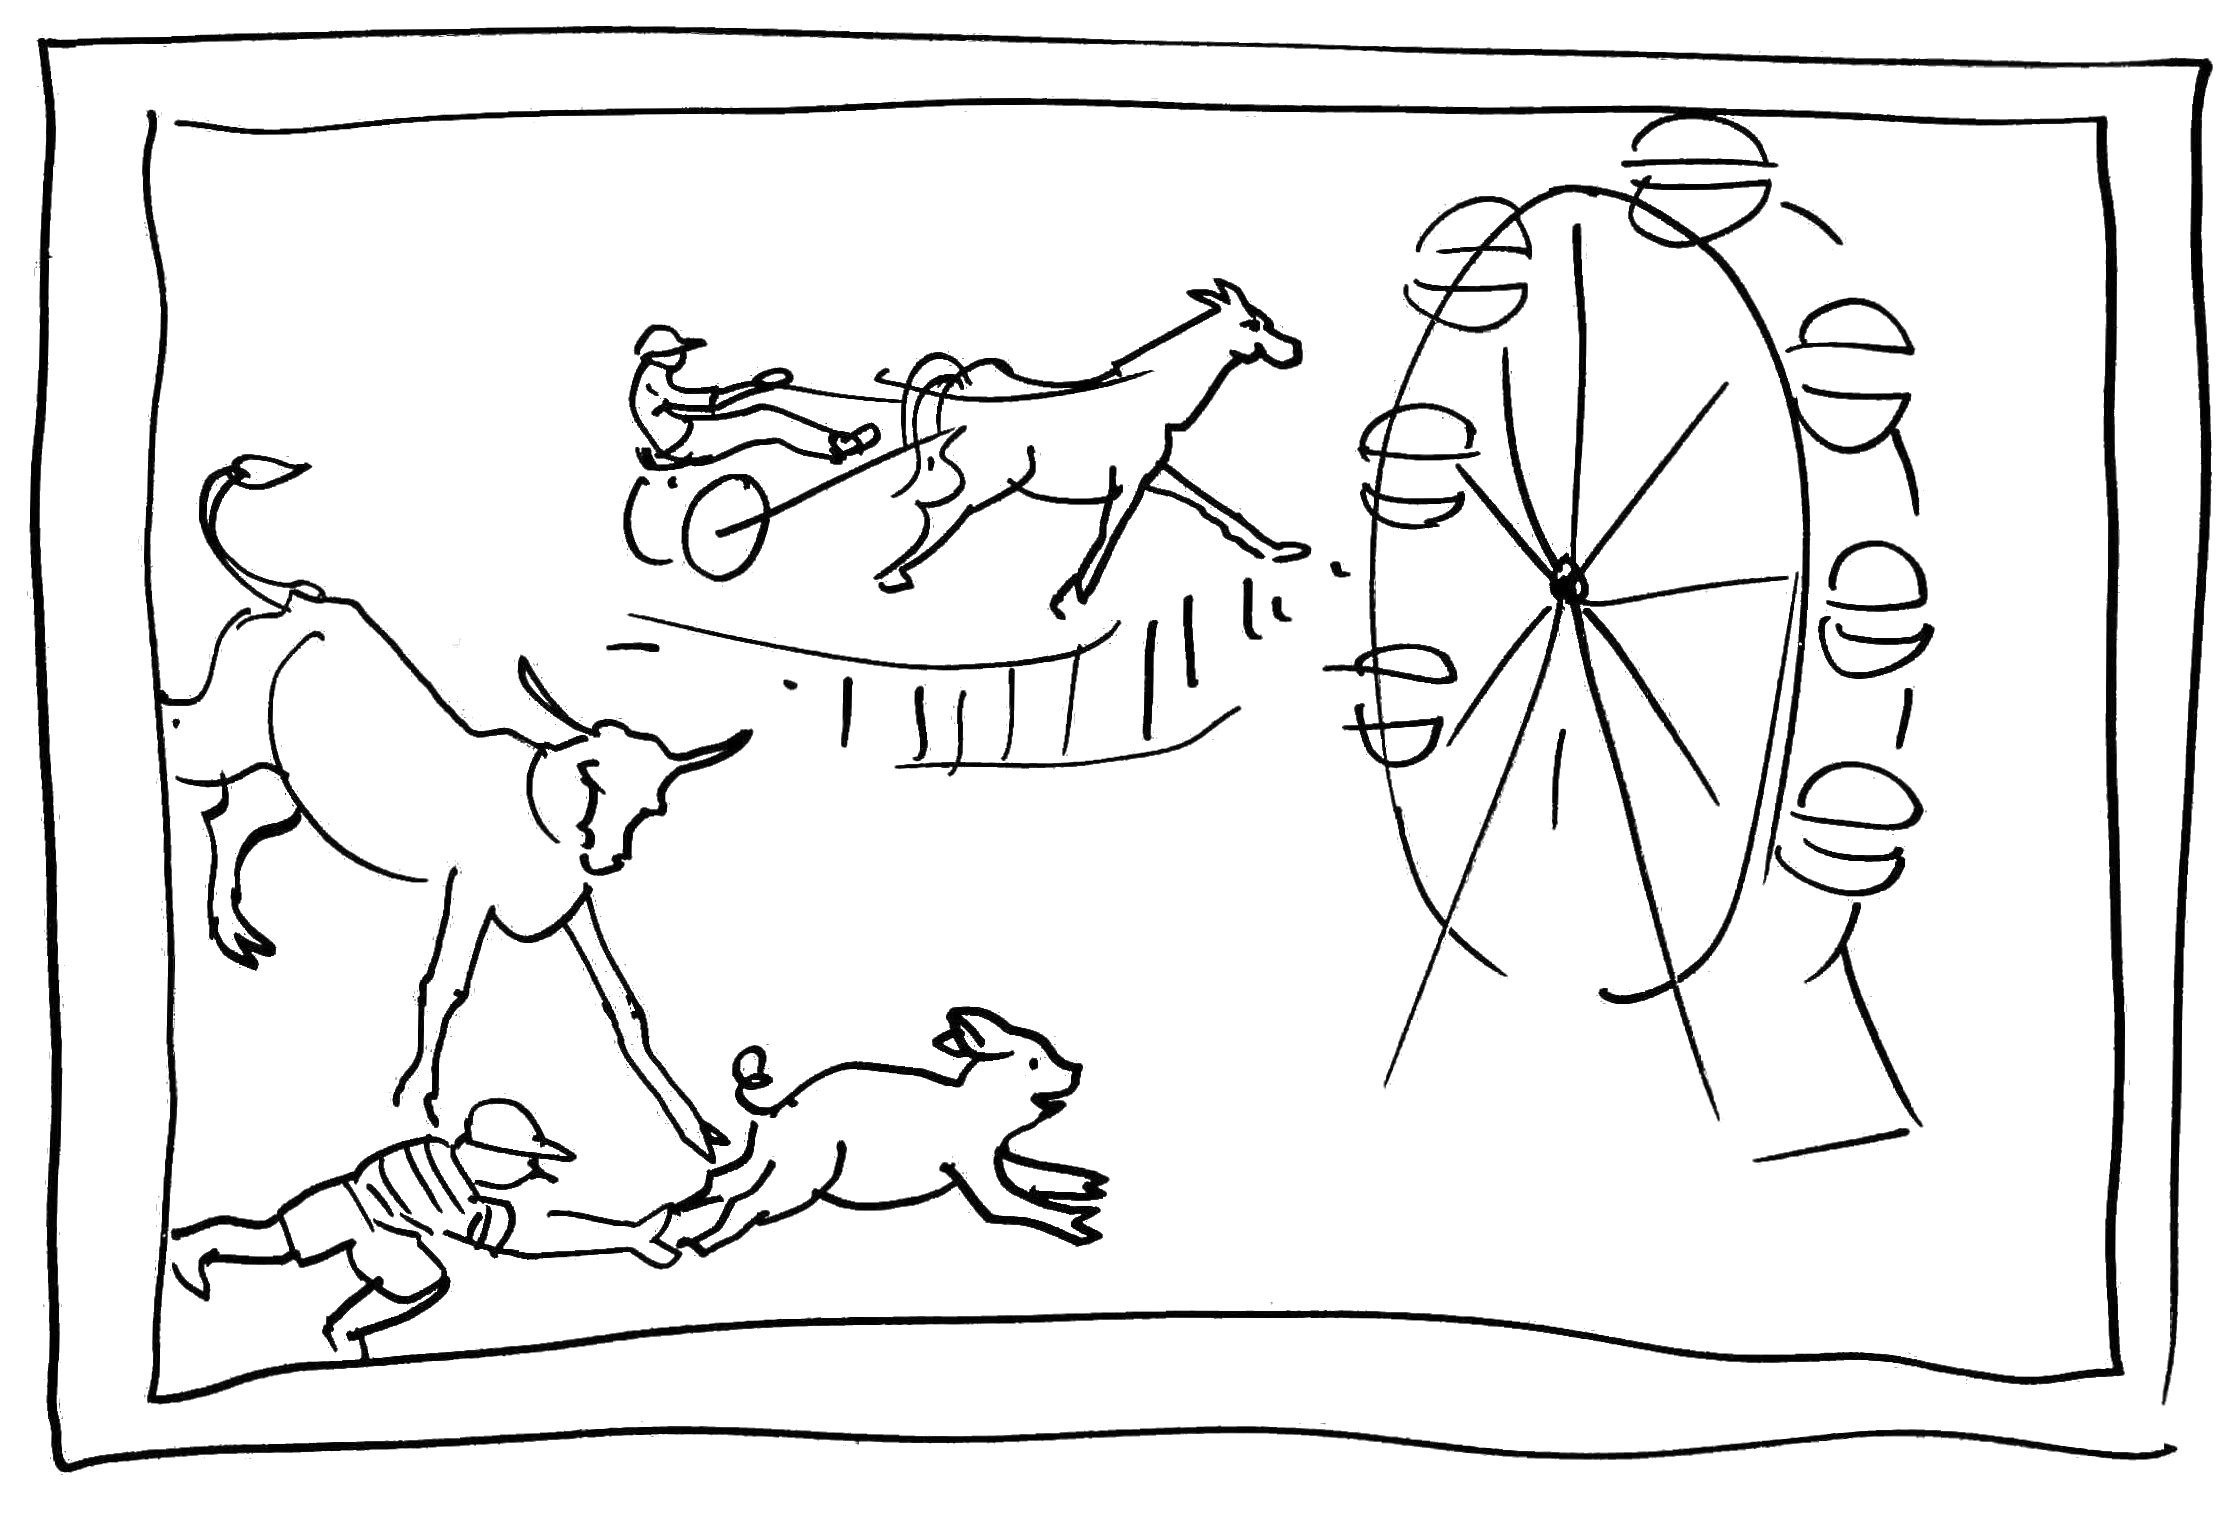 fun fair coloring pages - photo#31